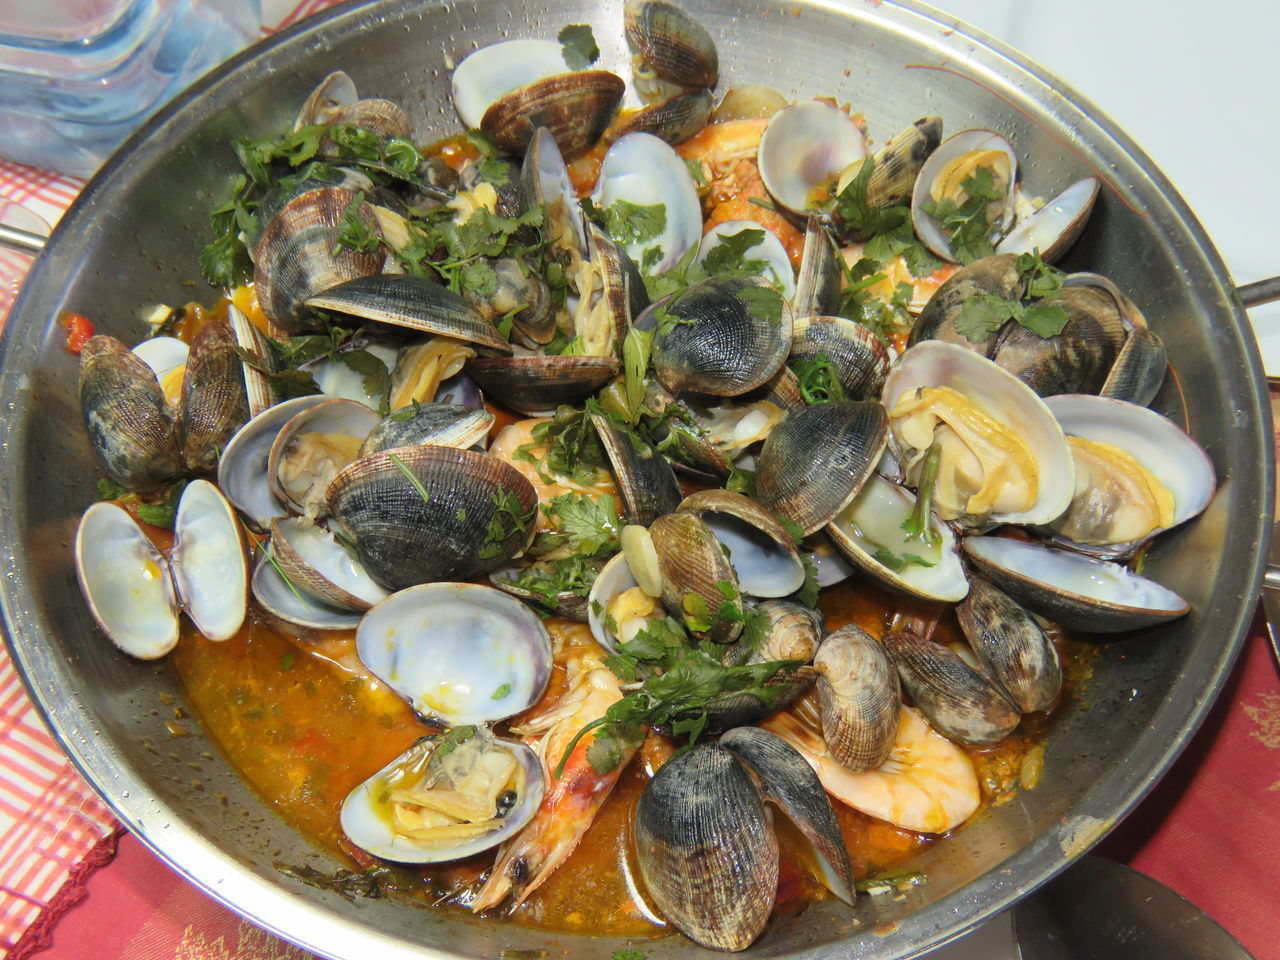 Food Food And Drink Healthy Eating Seafood Freshness High Angle View Plate Close-up Indoors  Mussel Ready-to-eat No People Oyster  Day From My Point Of View Seafoods Seafood Lovers Bowl Indoors  Seafood Food And Drink Freshness